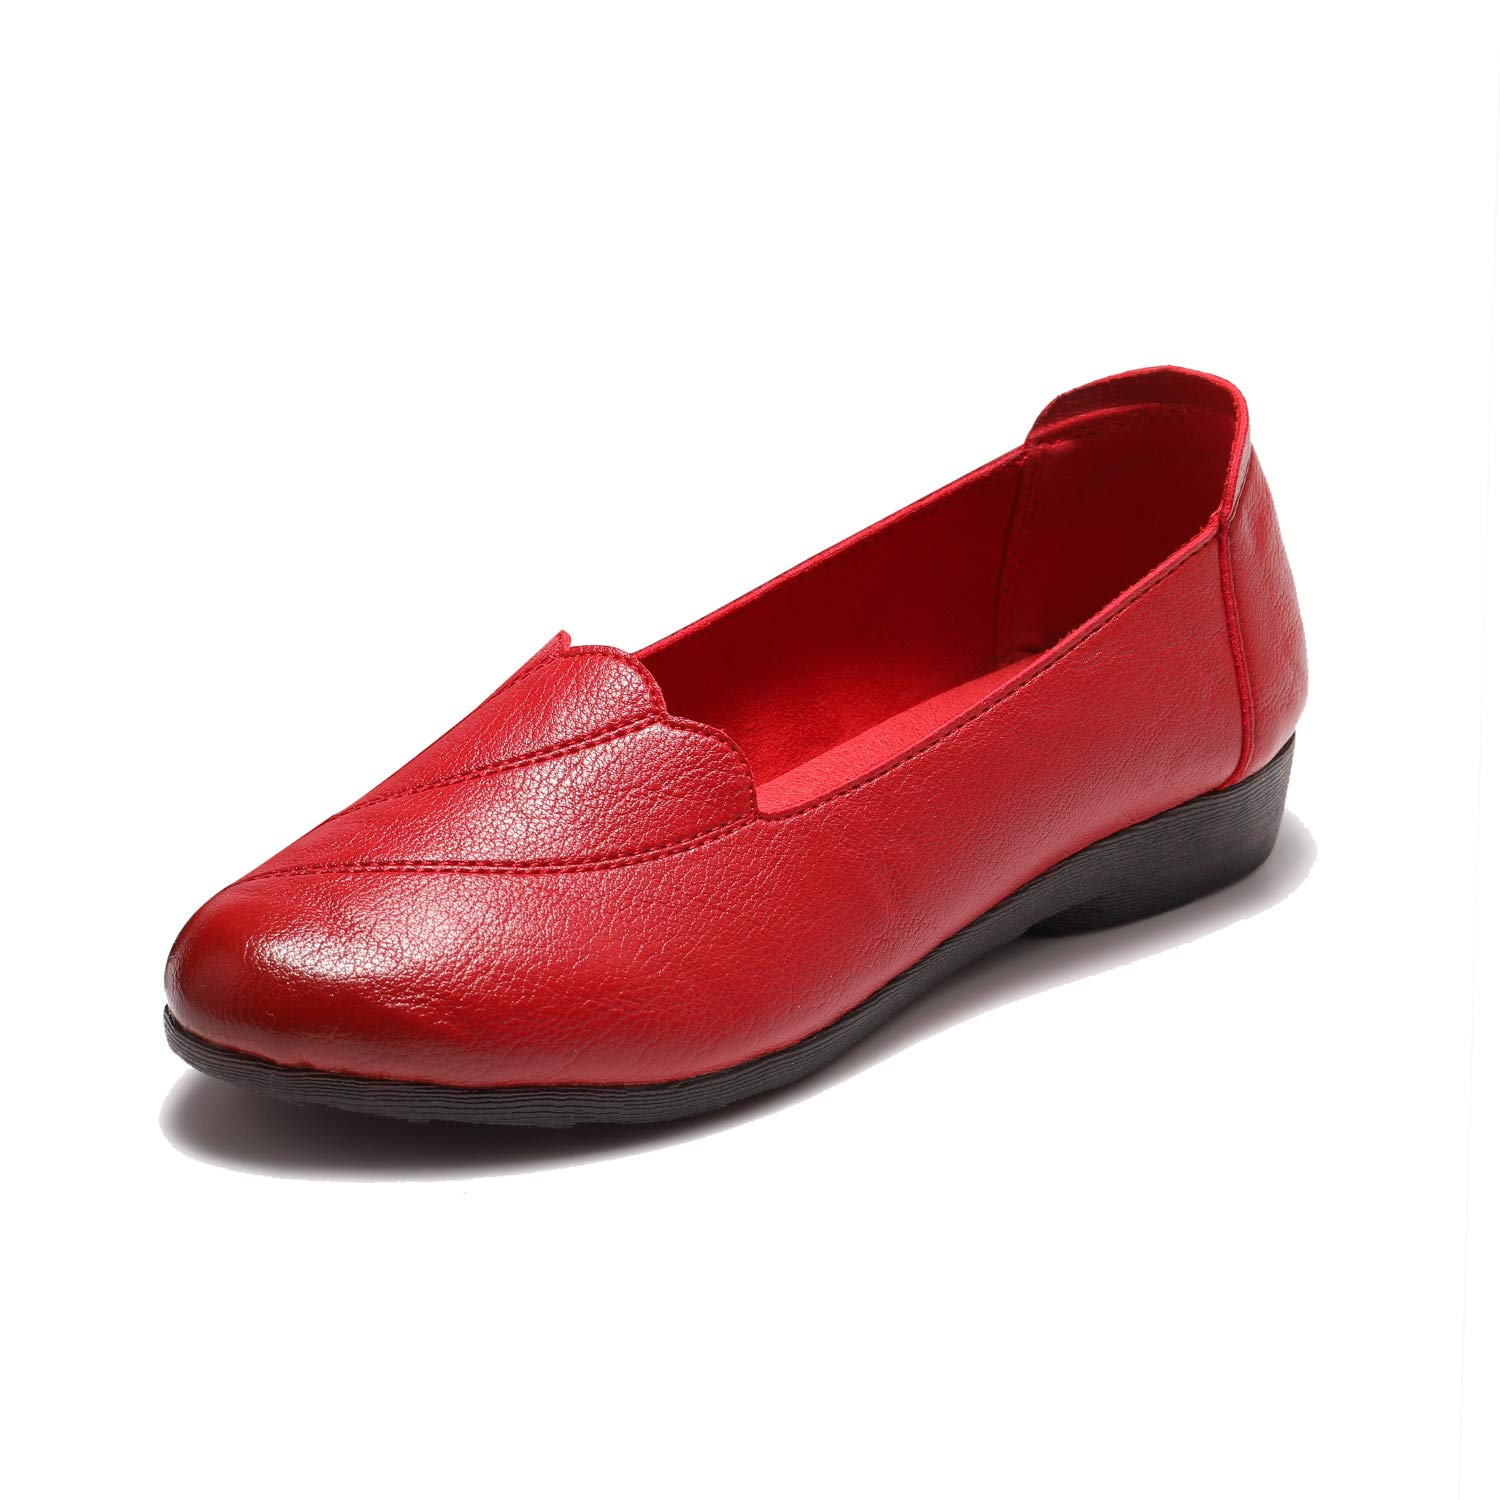 Free Week Women's Comfort Flats Leather Loafers Casual Slip On Flats Breathable Boat Shoes Driving Walking Fashion Soft Shoes Red